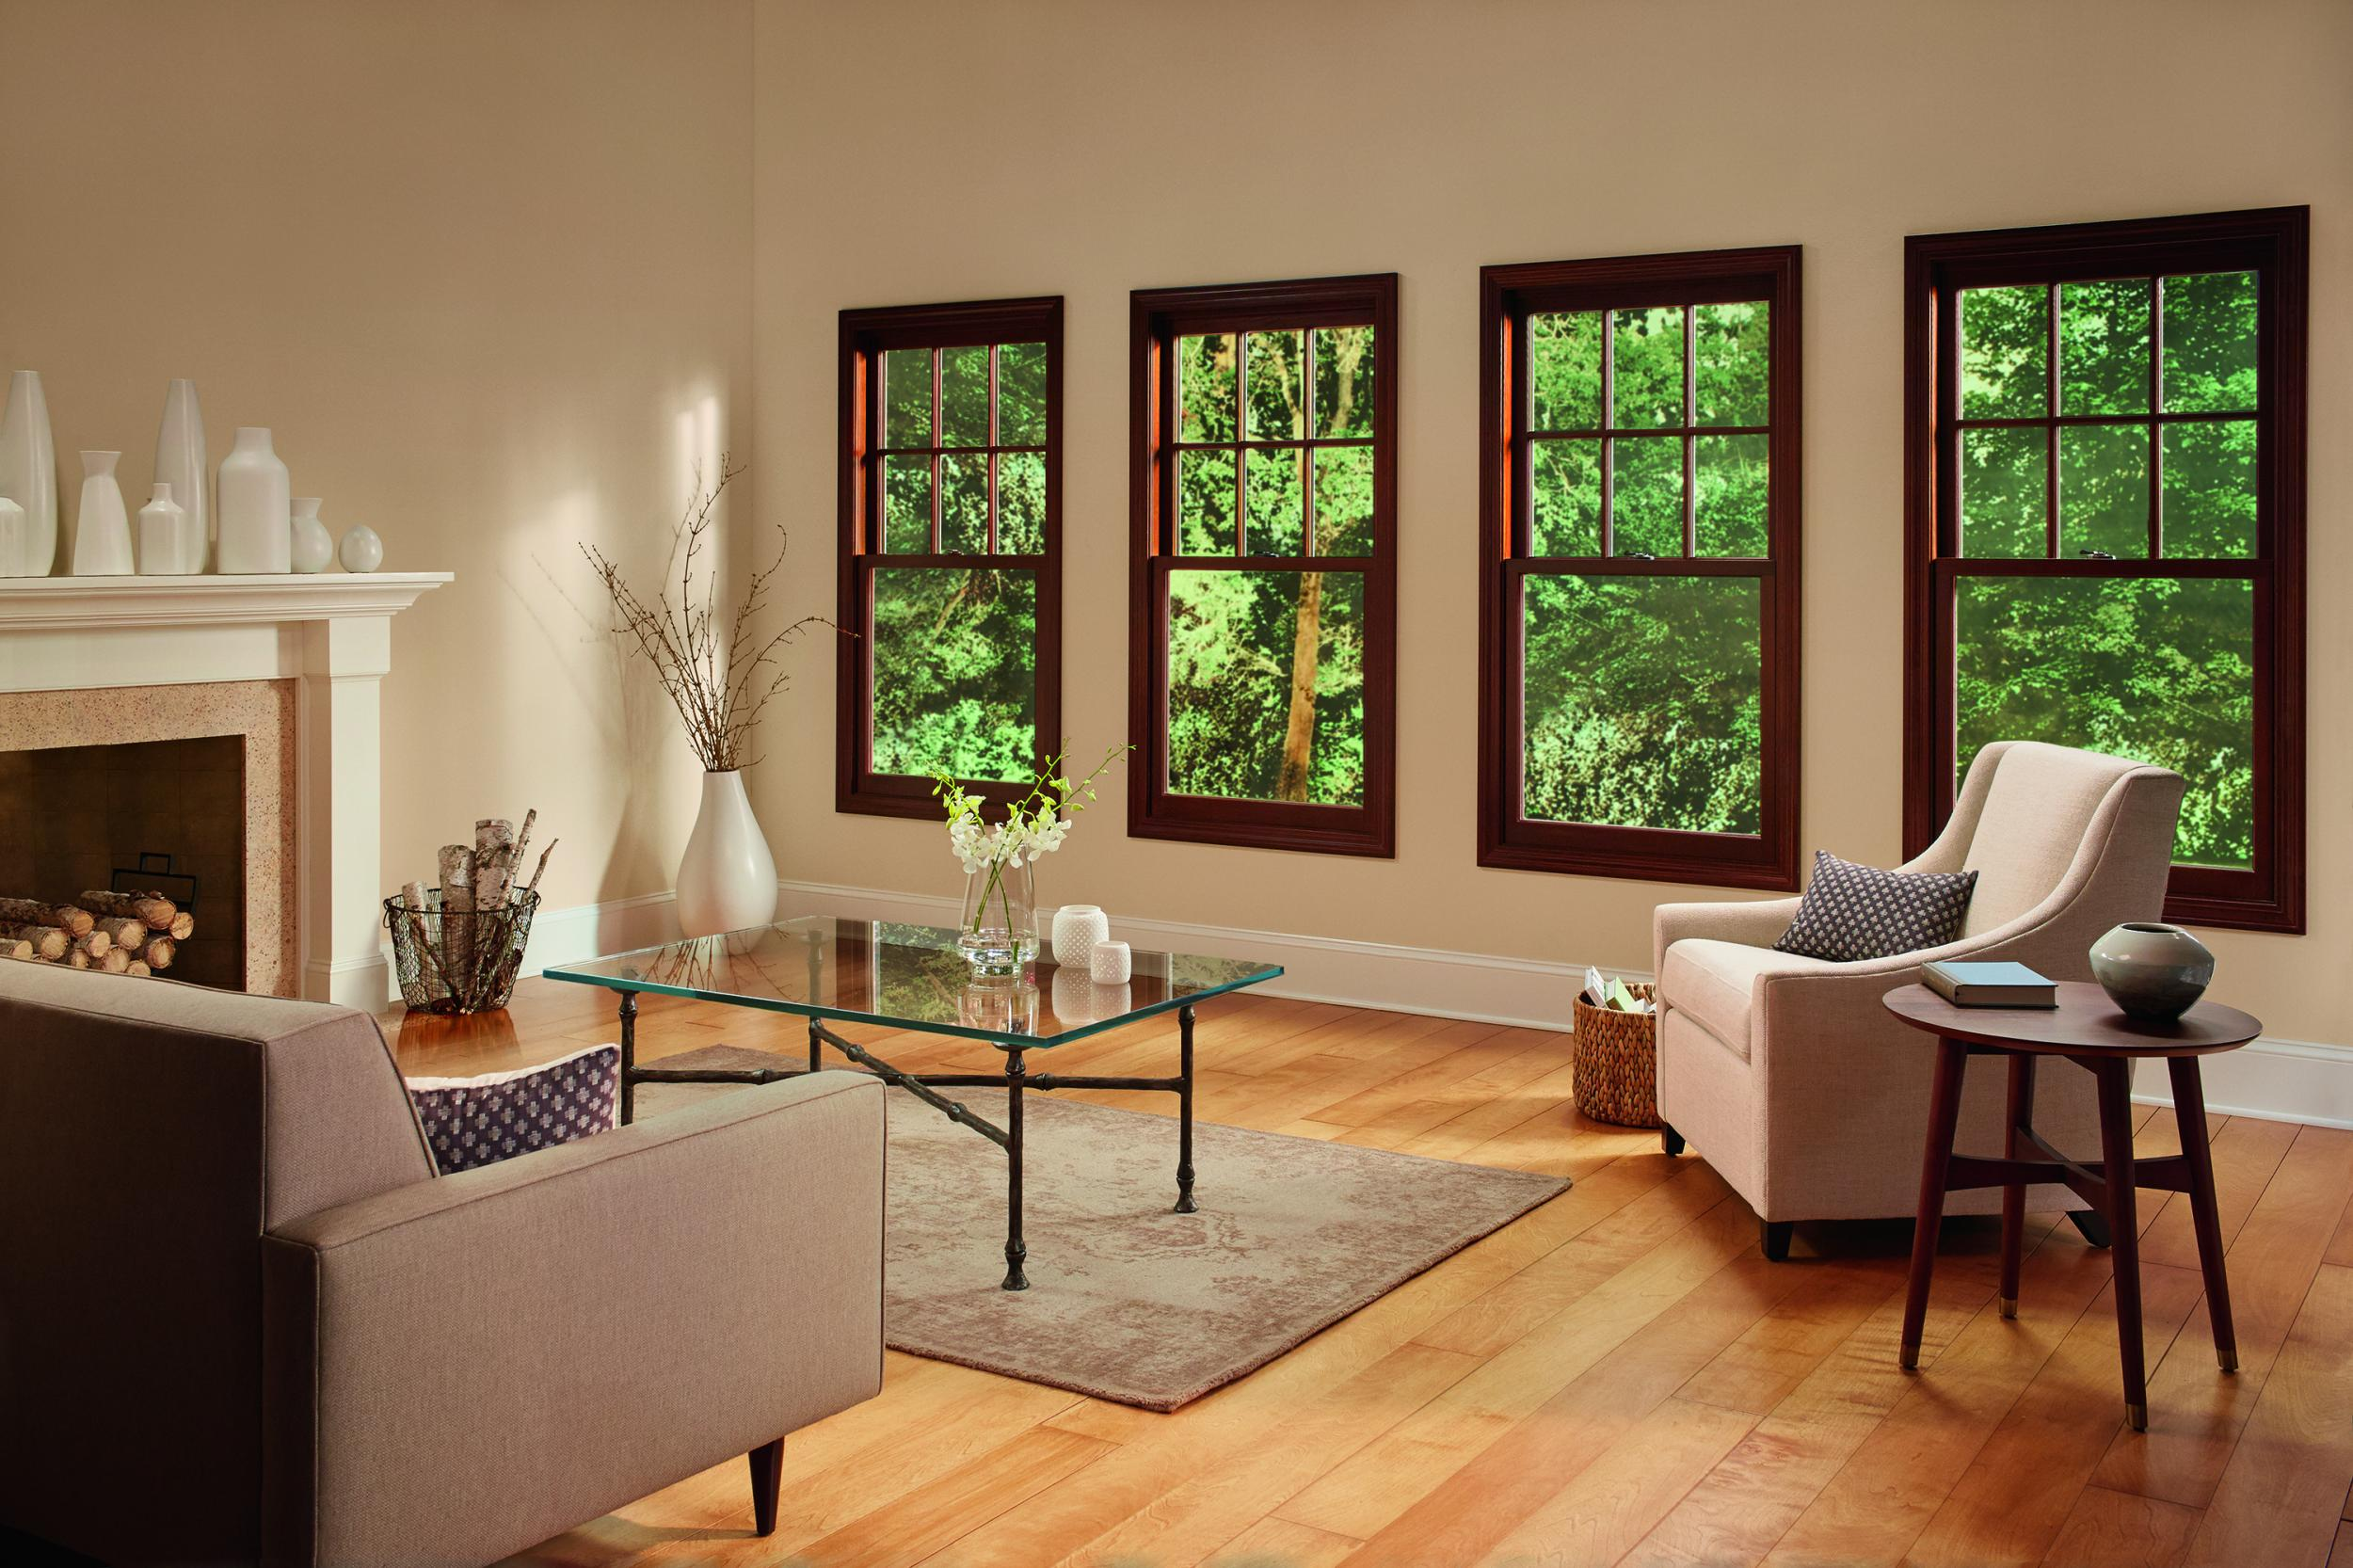 Marvin Ultimate Double Hung Next Generation